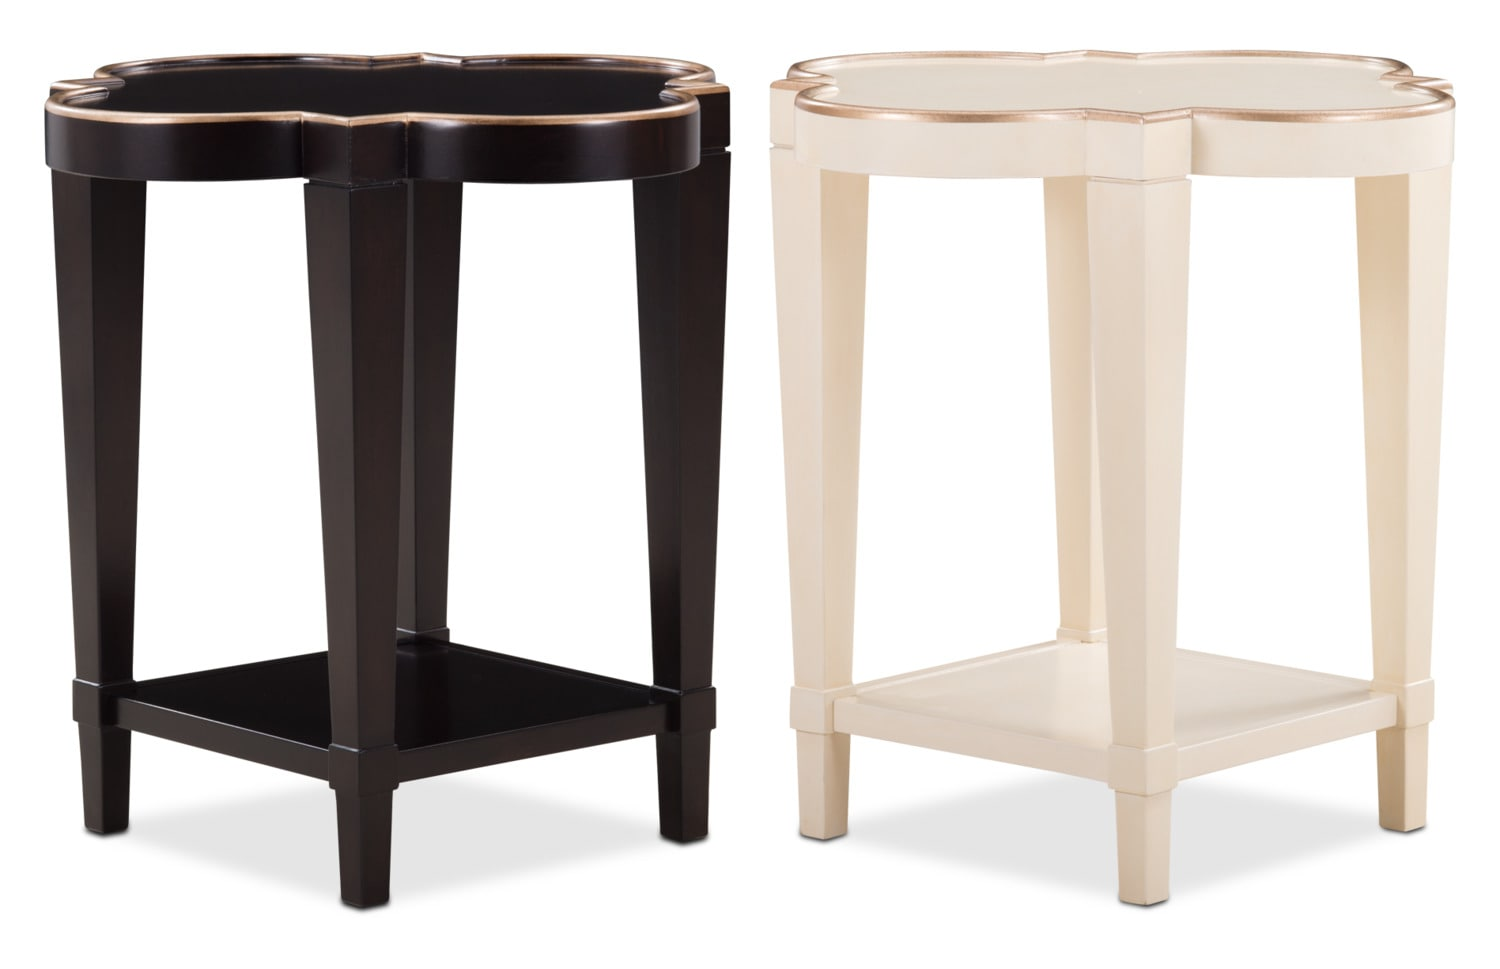 The Cardozo End Table Collection